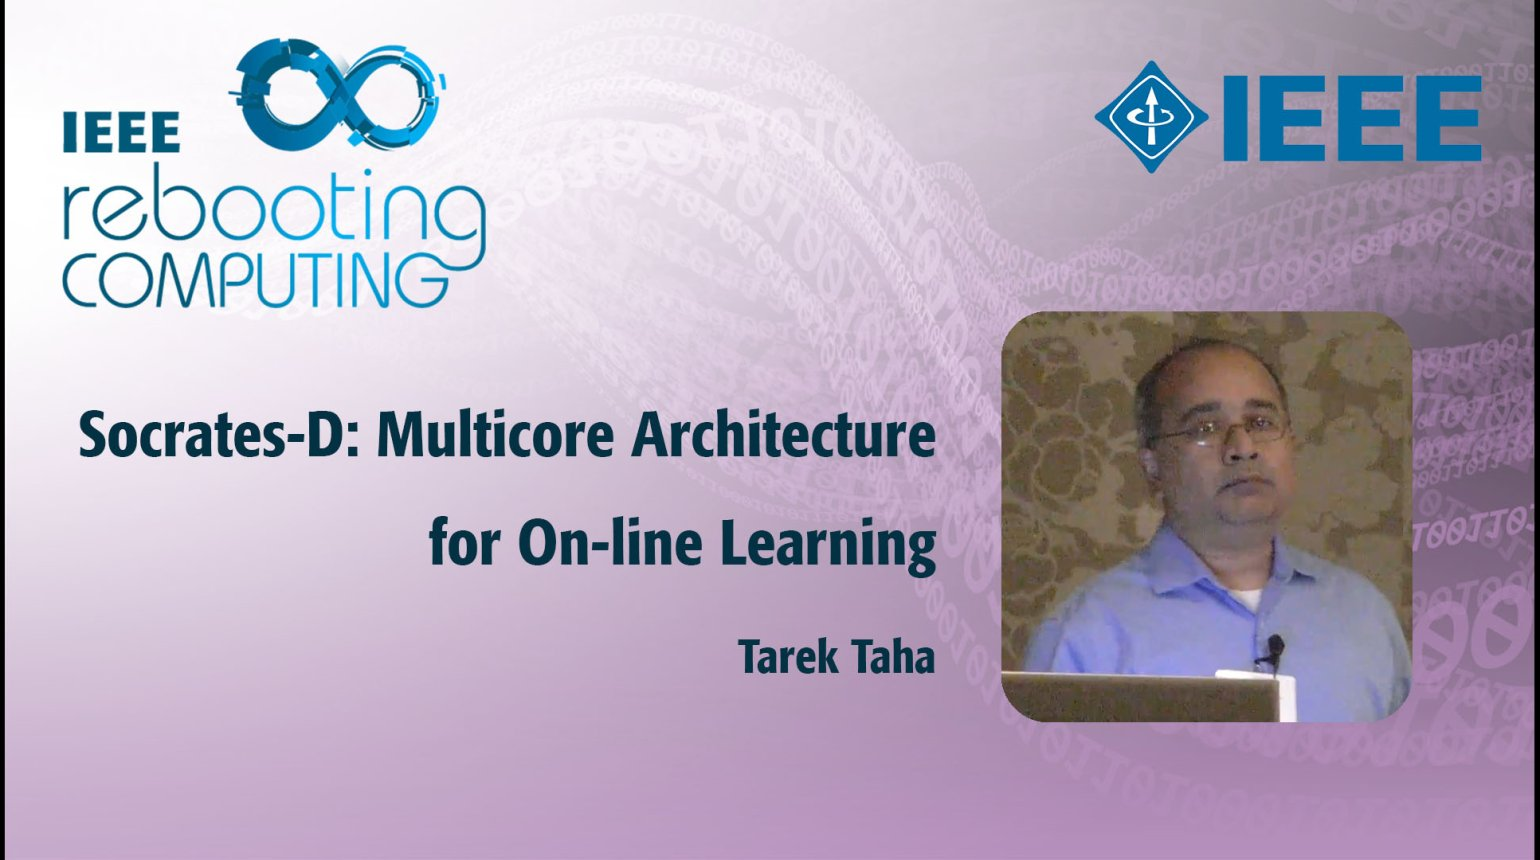 Socrates-D: Multicore Architecture for On-line Learning: IEEE Rebooting Computing 2017